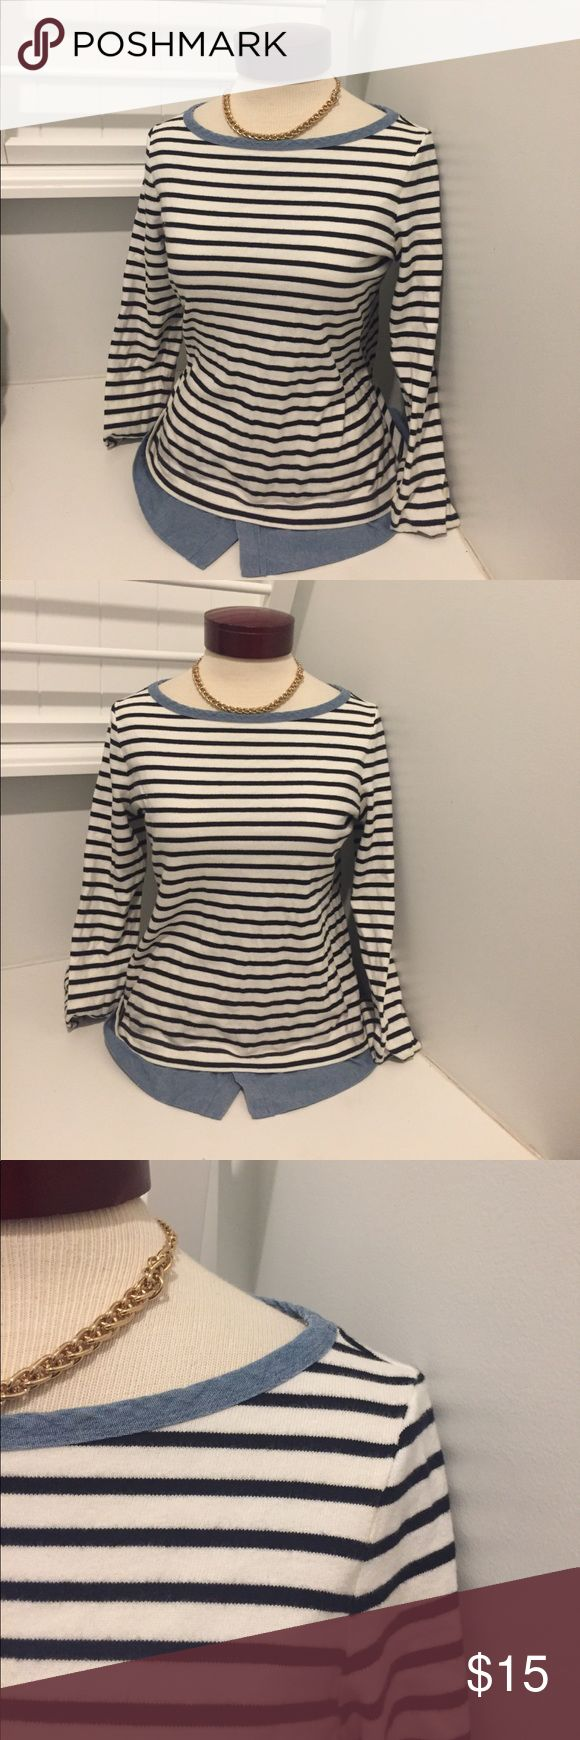 ANN TAYLOR LOFT CAREER BLOUSE NAUTICAL SMALL Very gently used this shirt is a loose fit and could work as a small or a medium LOFT Tops Blouses